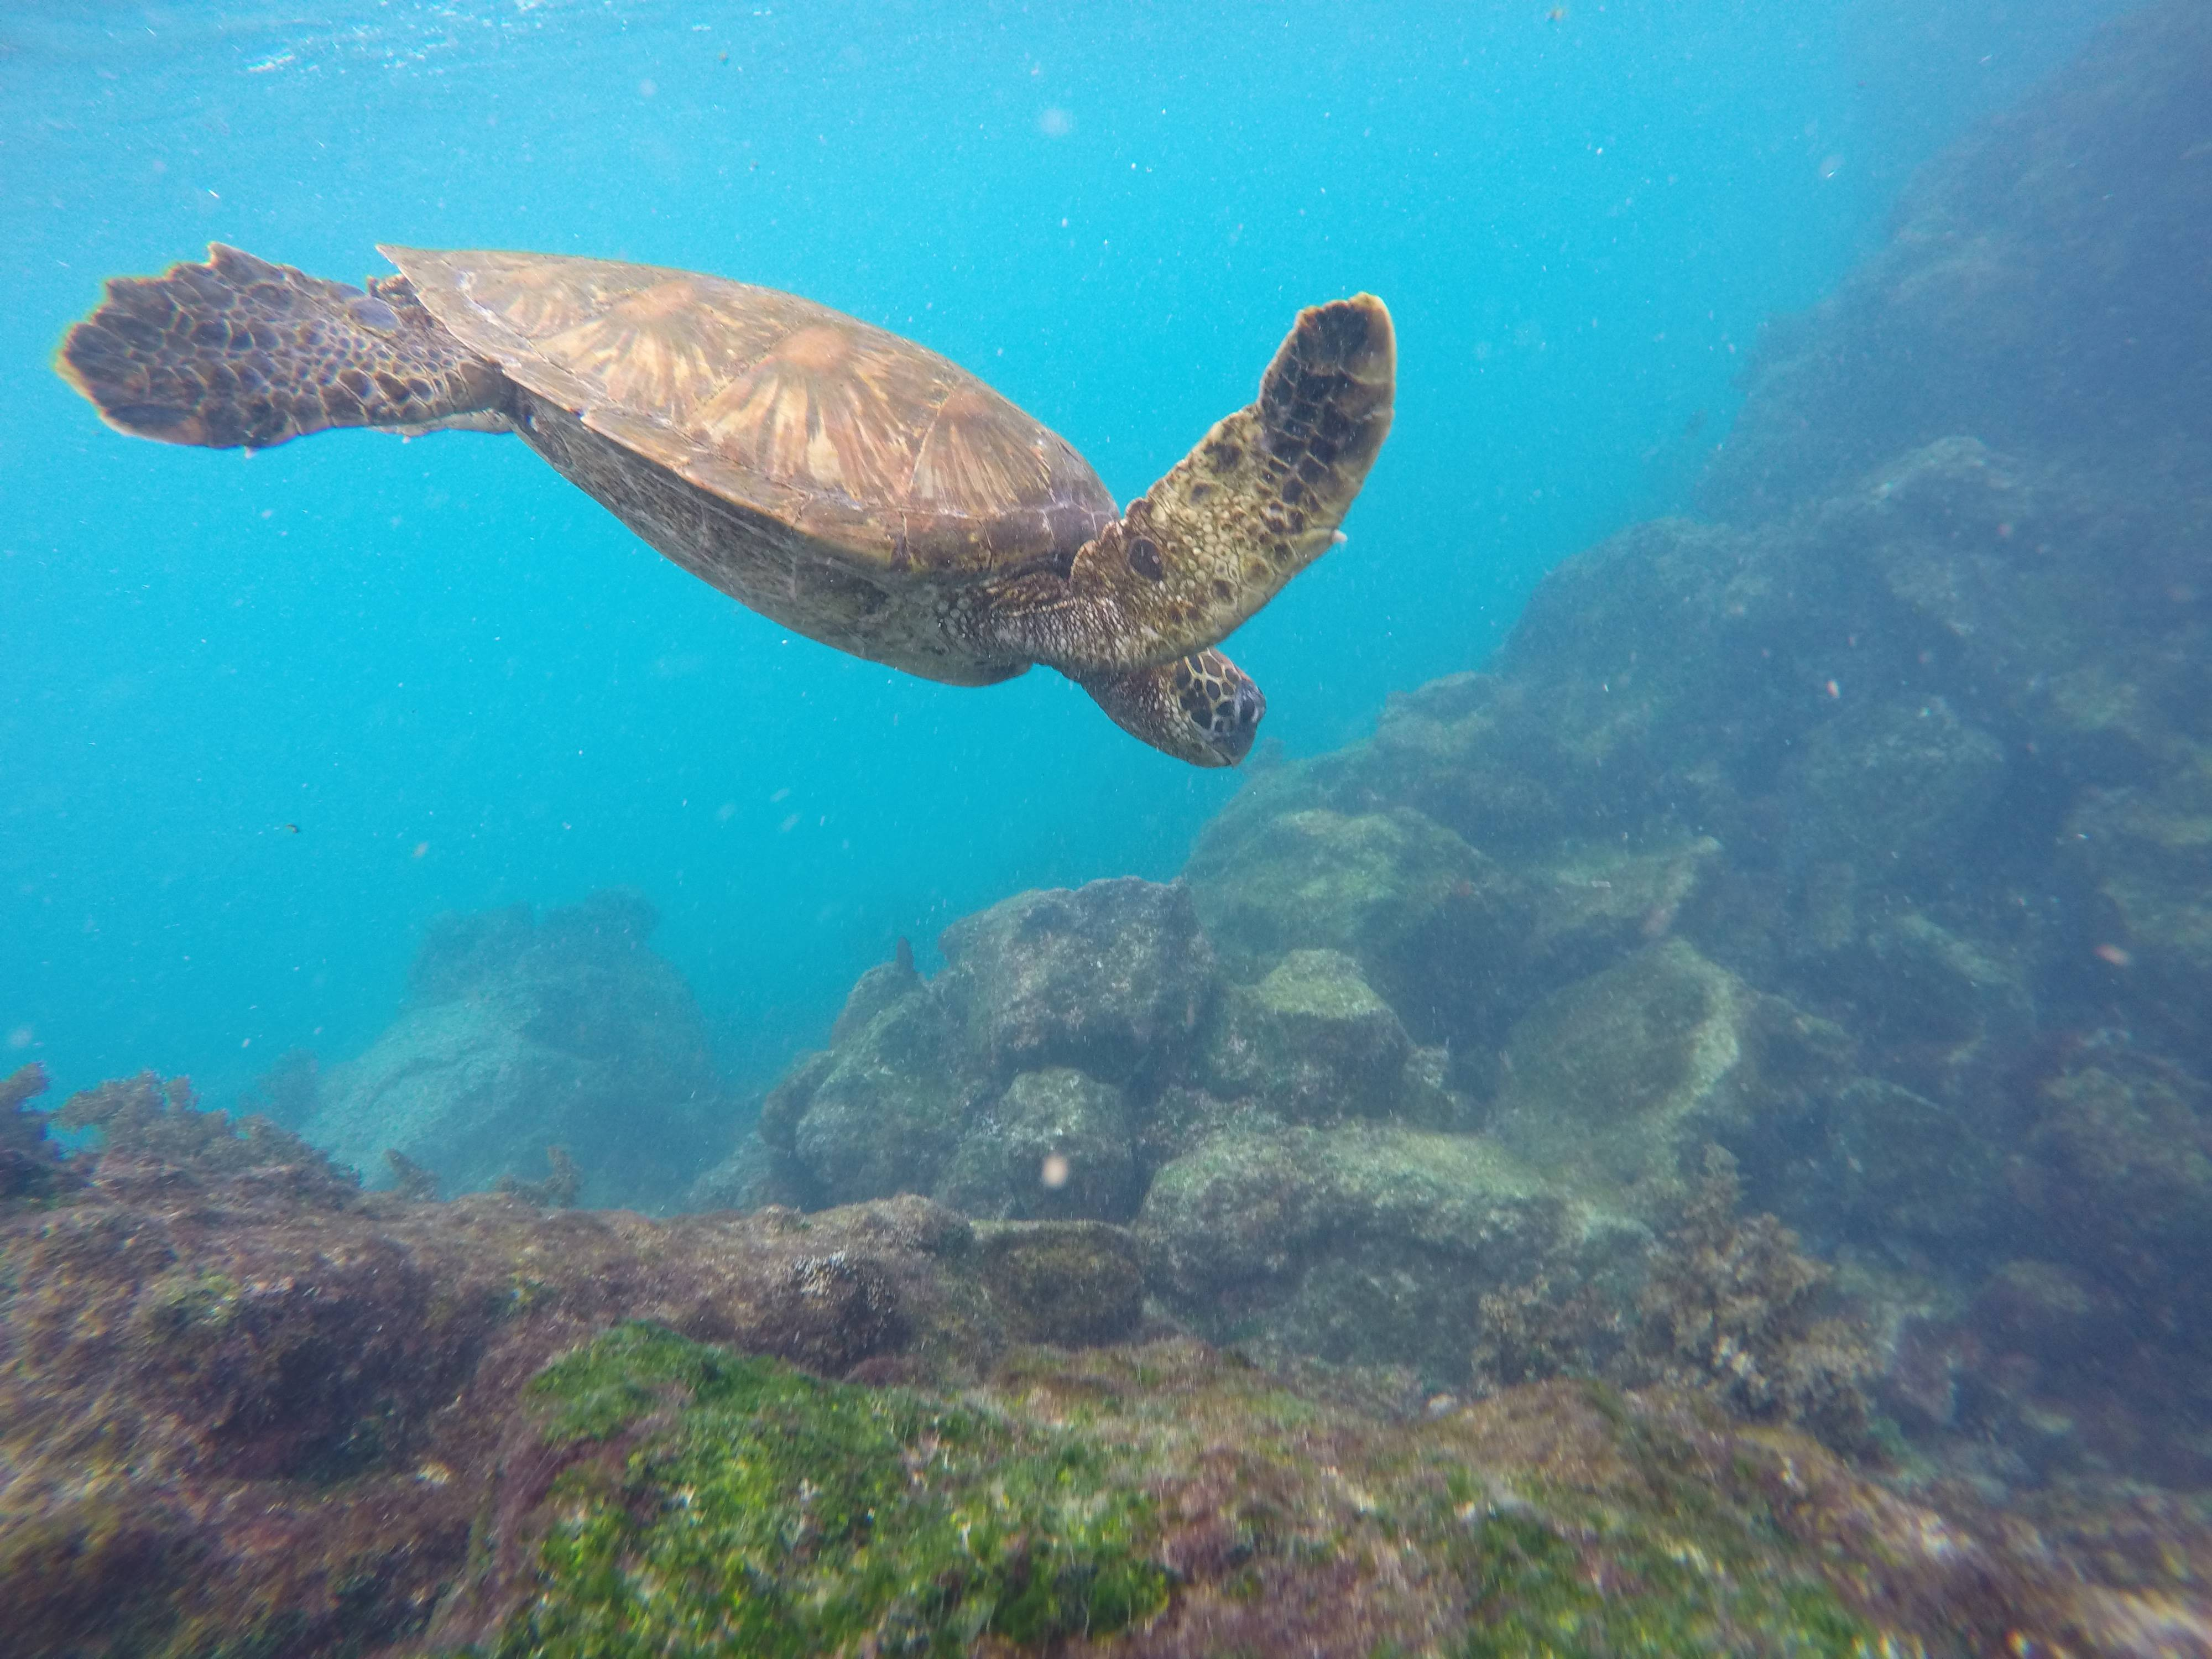 Photo 3: Les Iles Galapagos, un paradis!!!!